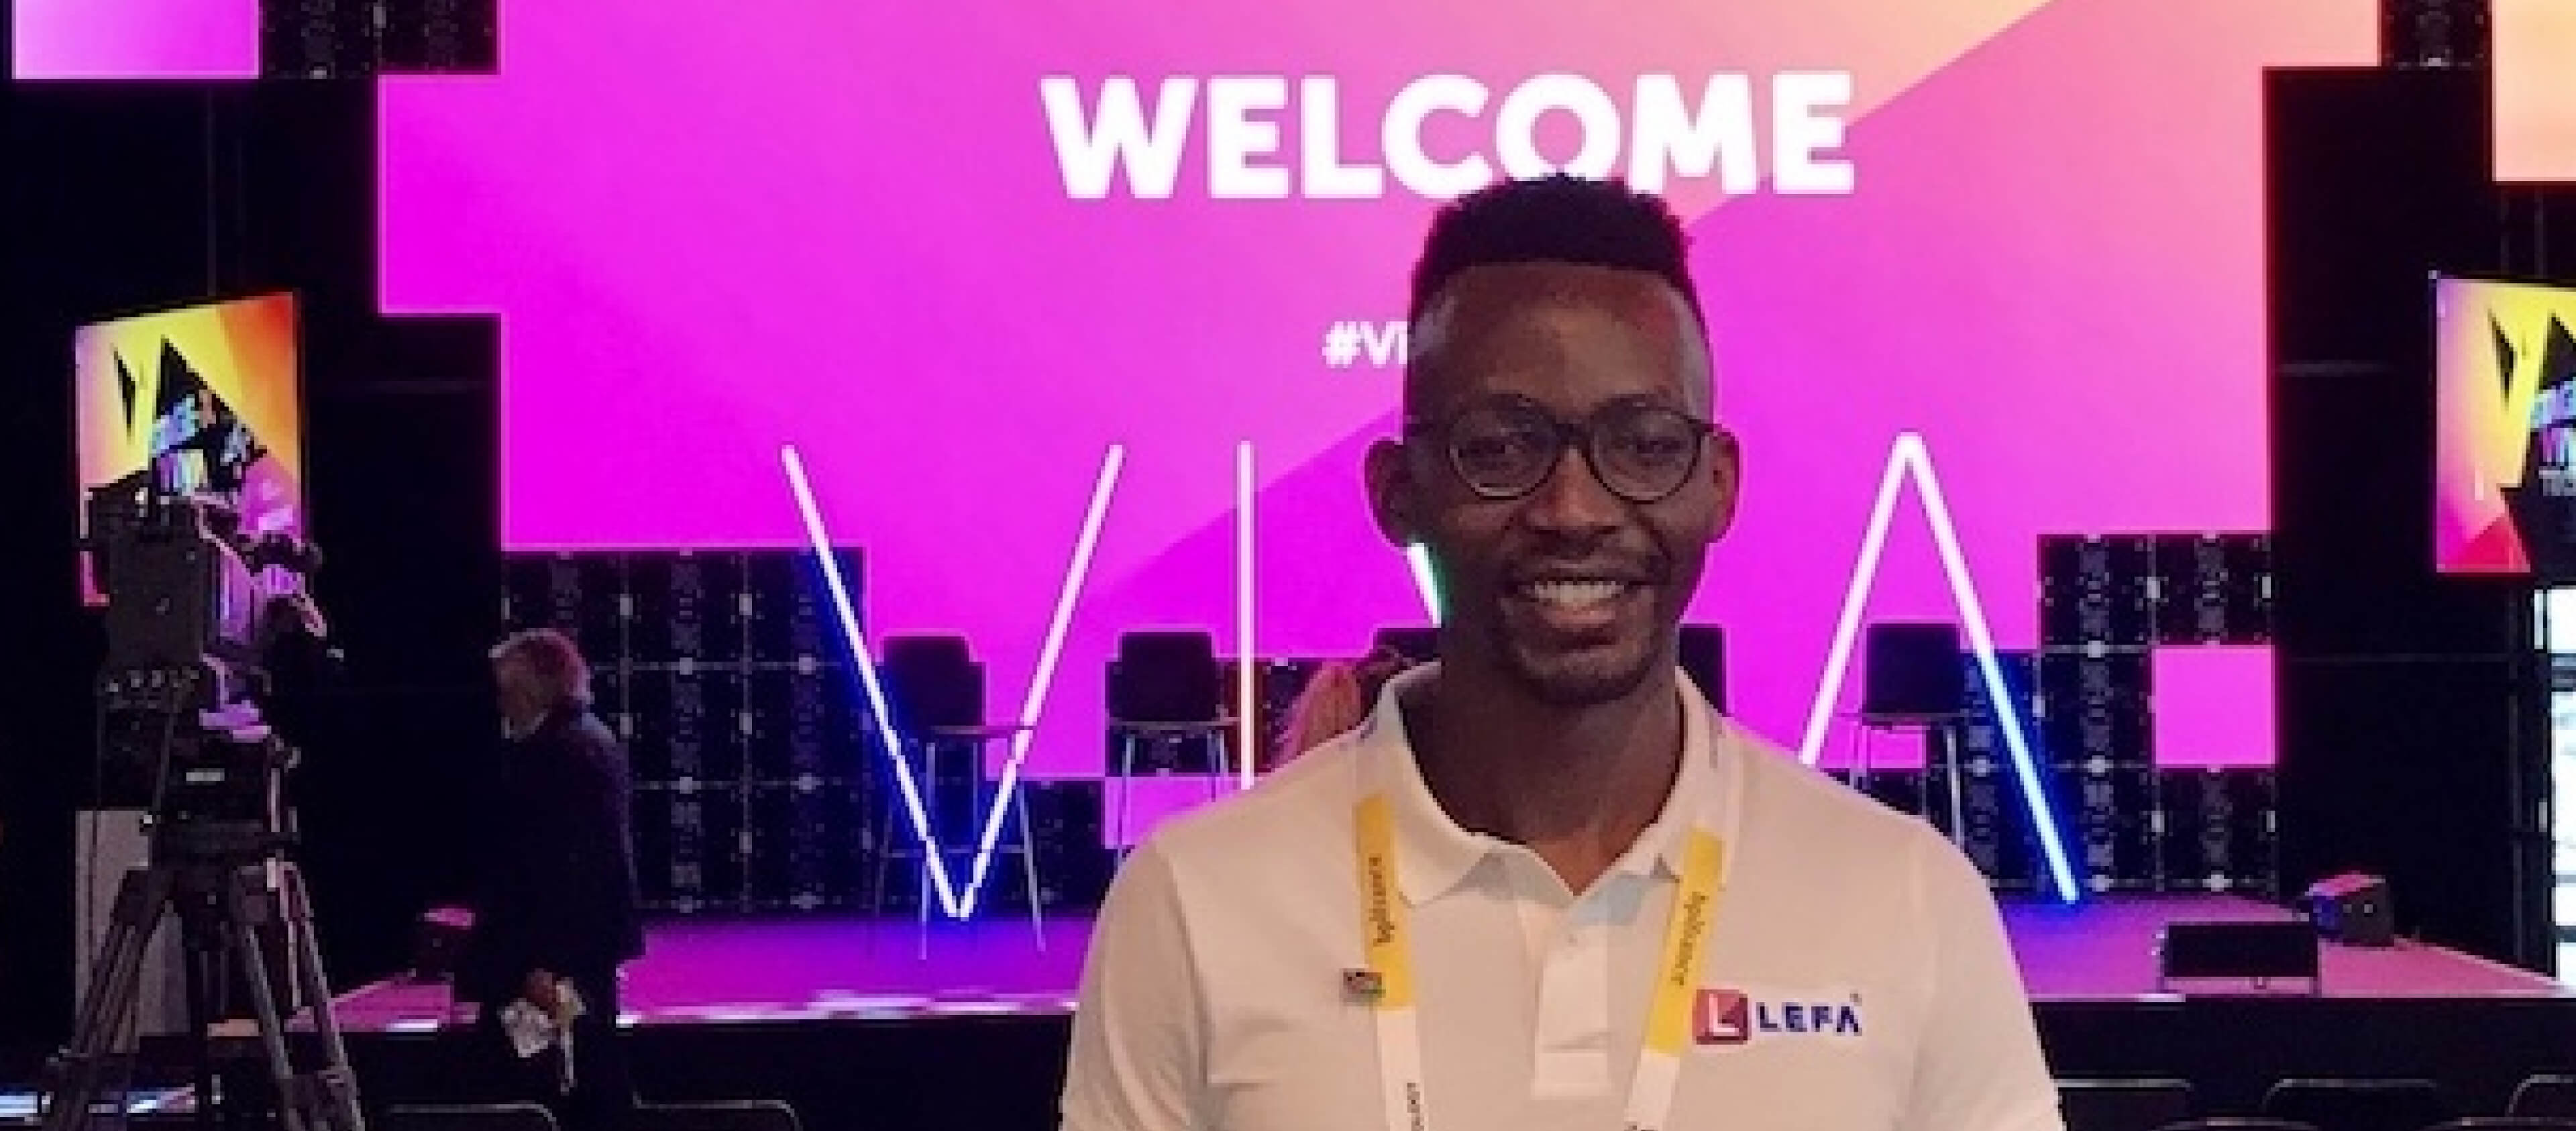 Meet LEFA, Startup Reinventing Local Mobility In Namibia